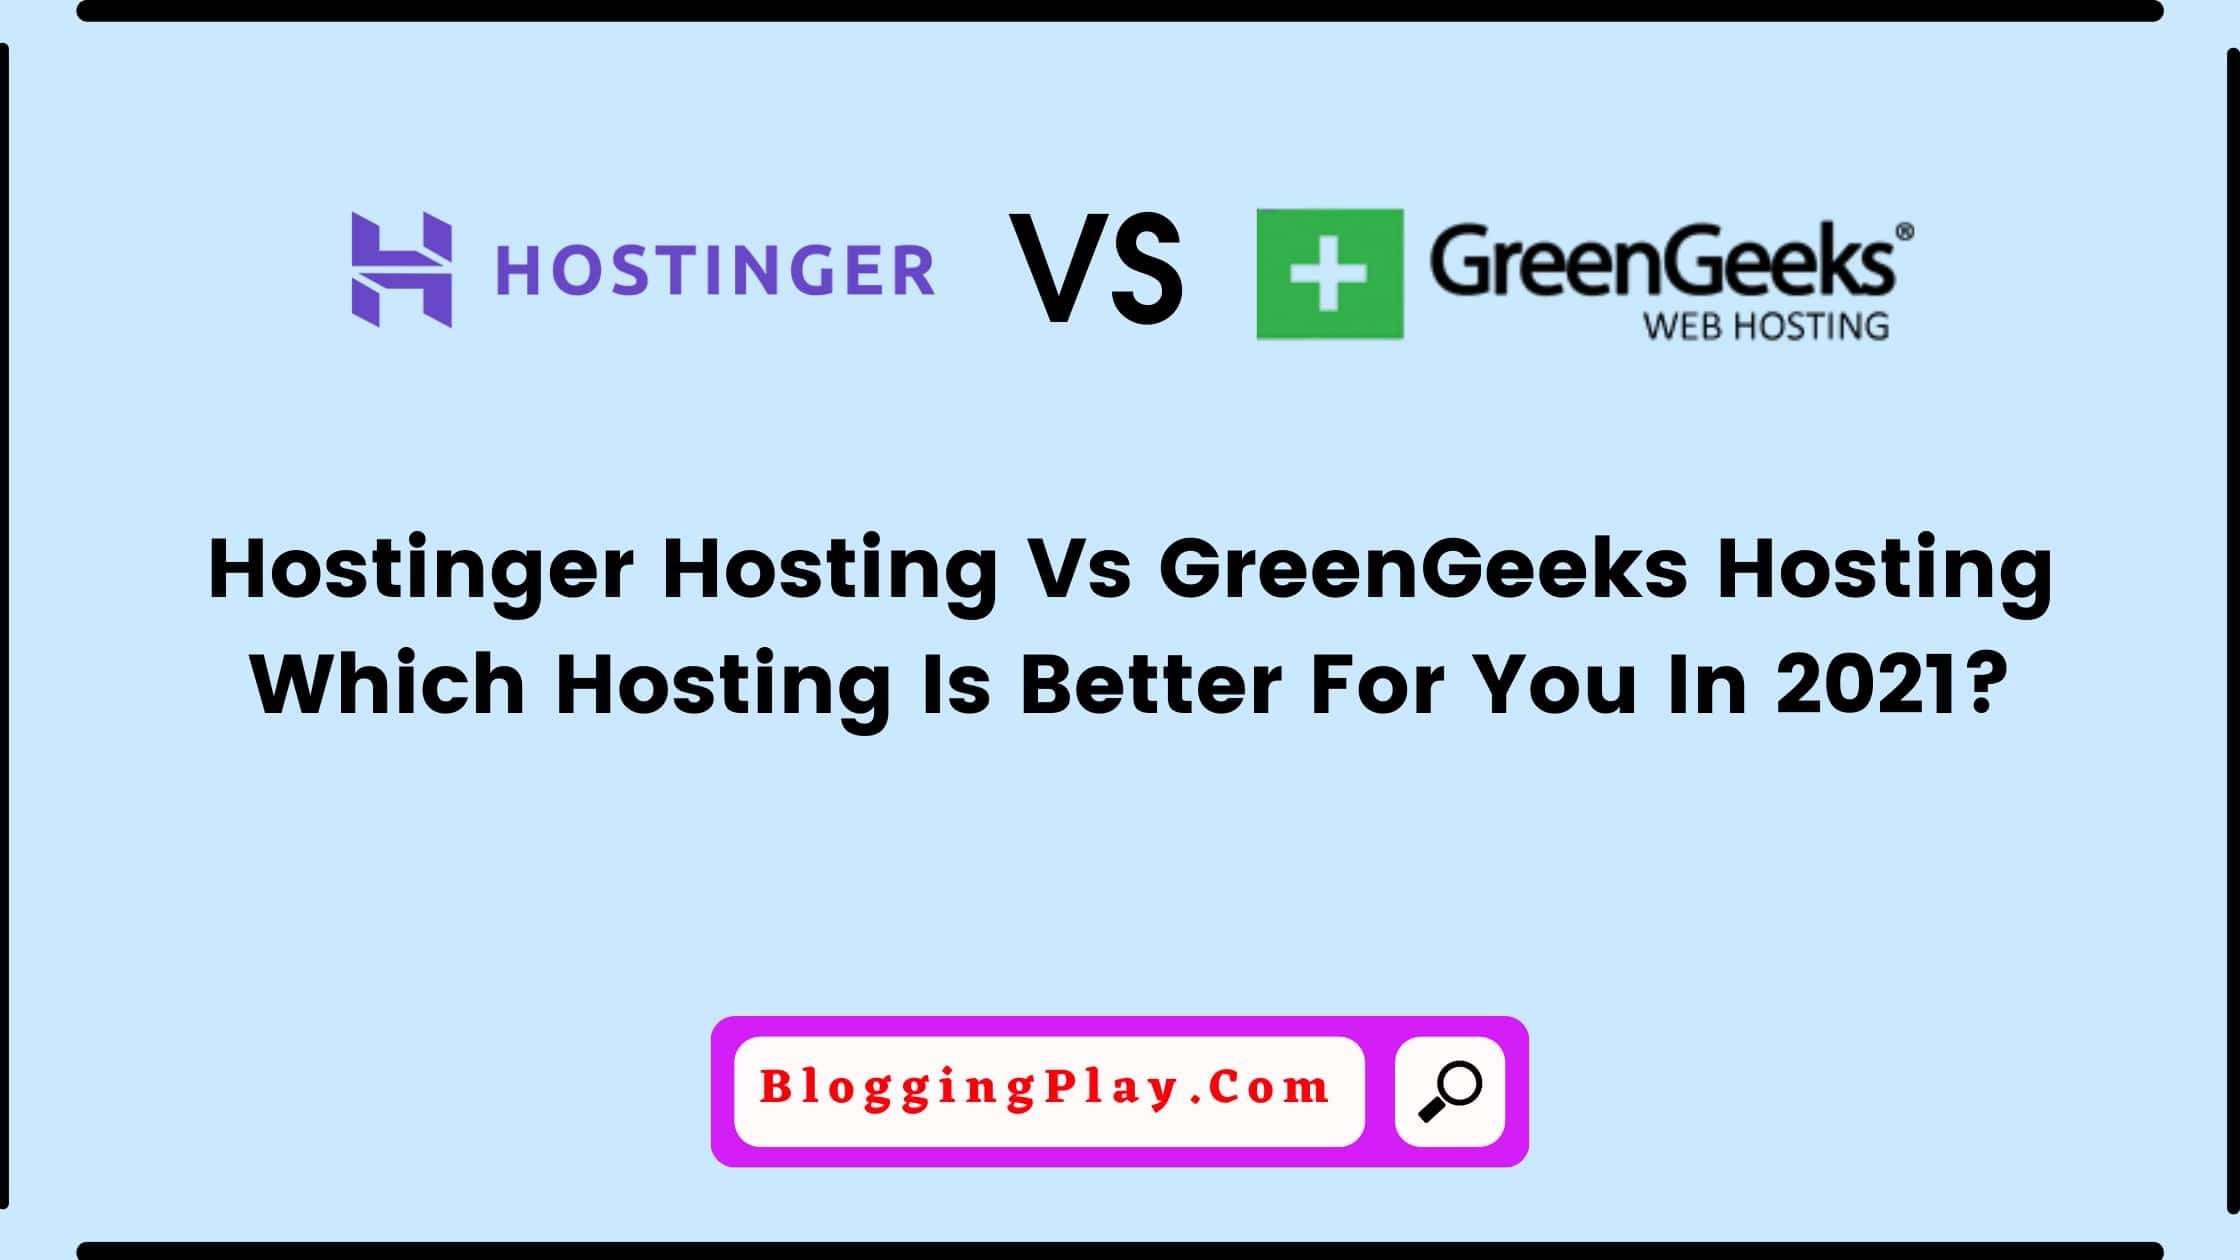 Hostinger Hosting Review Vs GreenGeeks Hosting